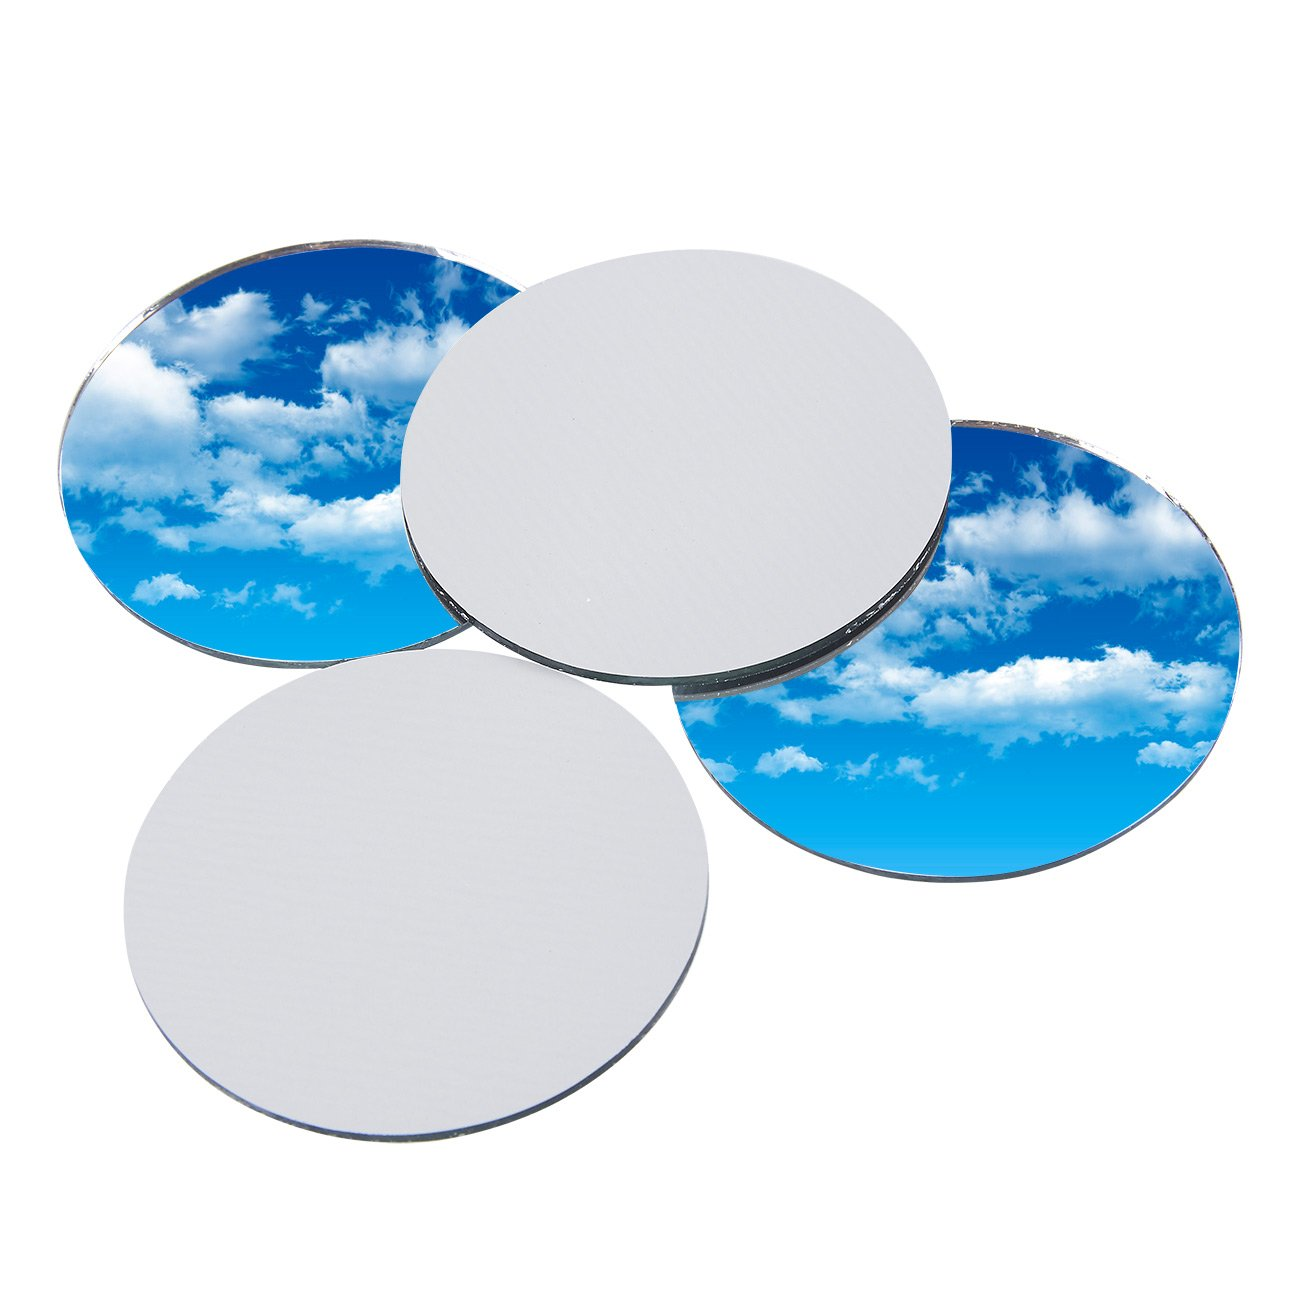 Craft Mirror - 60-Pack Mini Mirror Circles, Glass Mosaic Tile Pieces for Home Decor, DIY Craft Projects, 2-Inch Diameter by Juvale (Image #1)